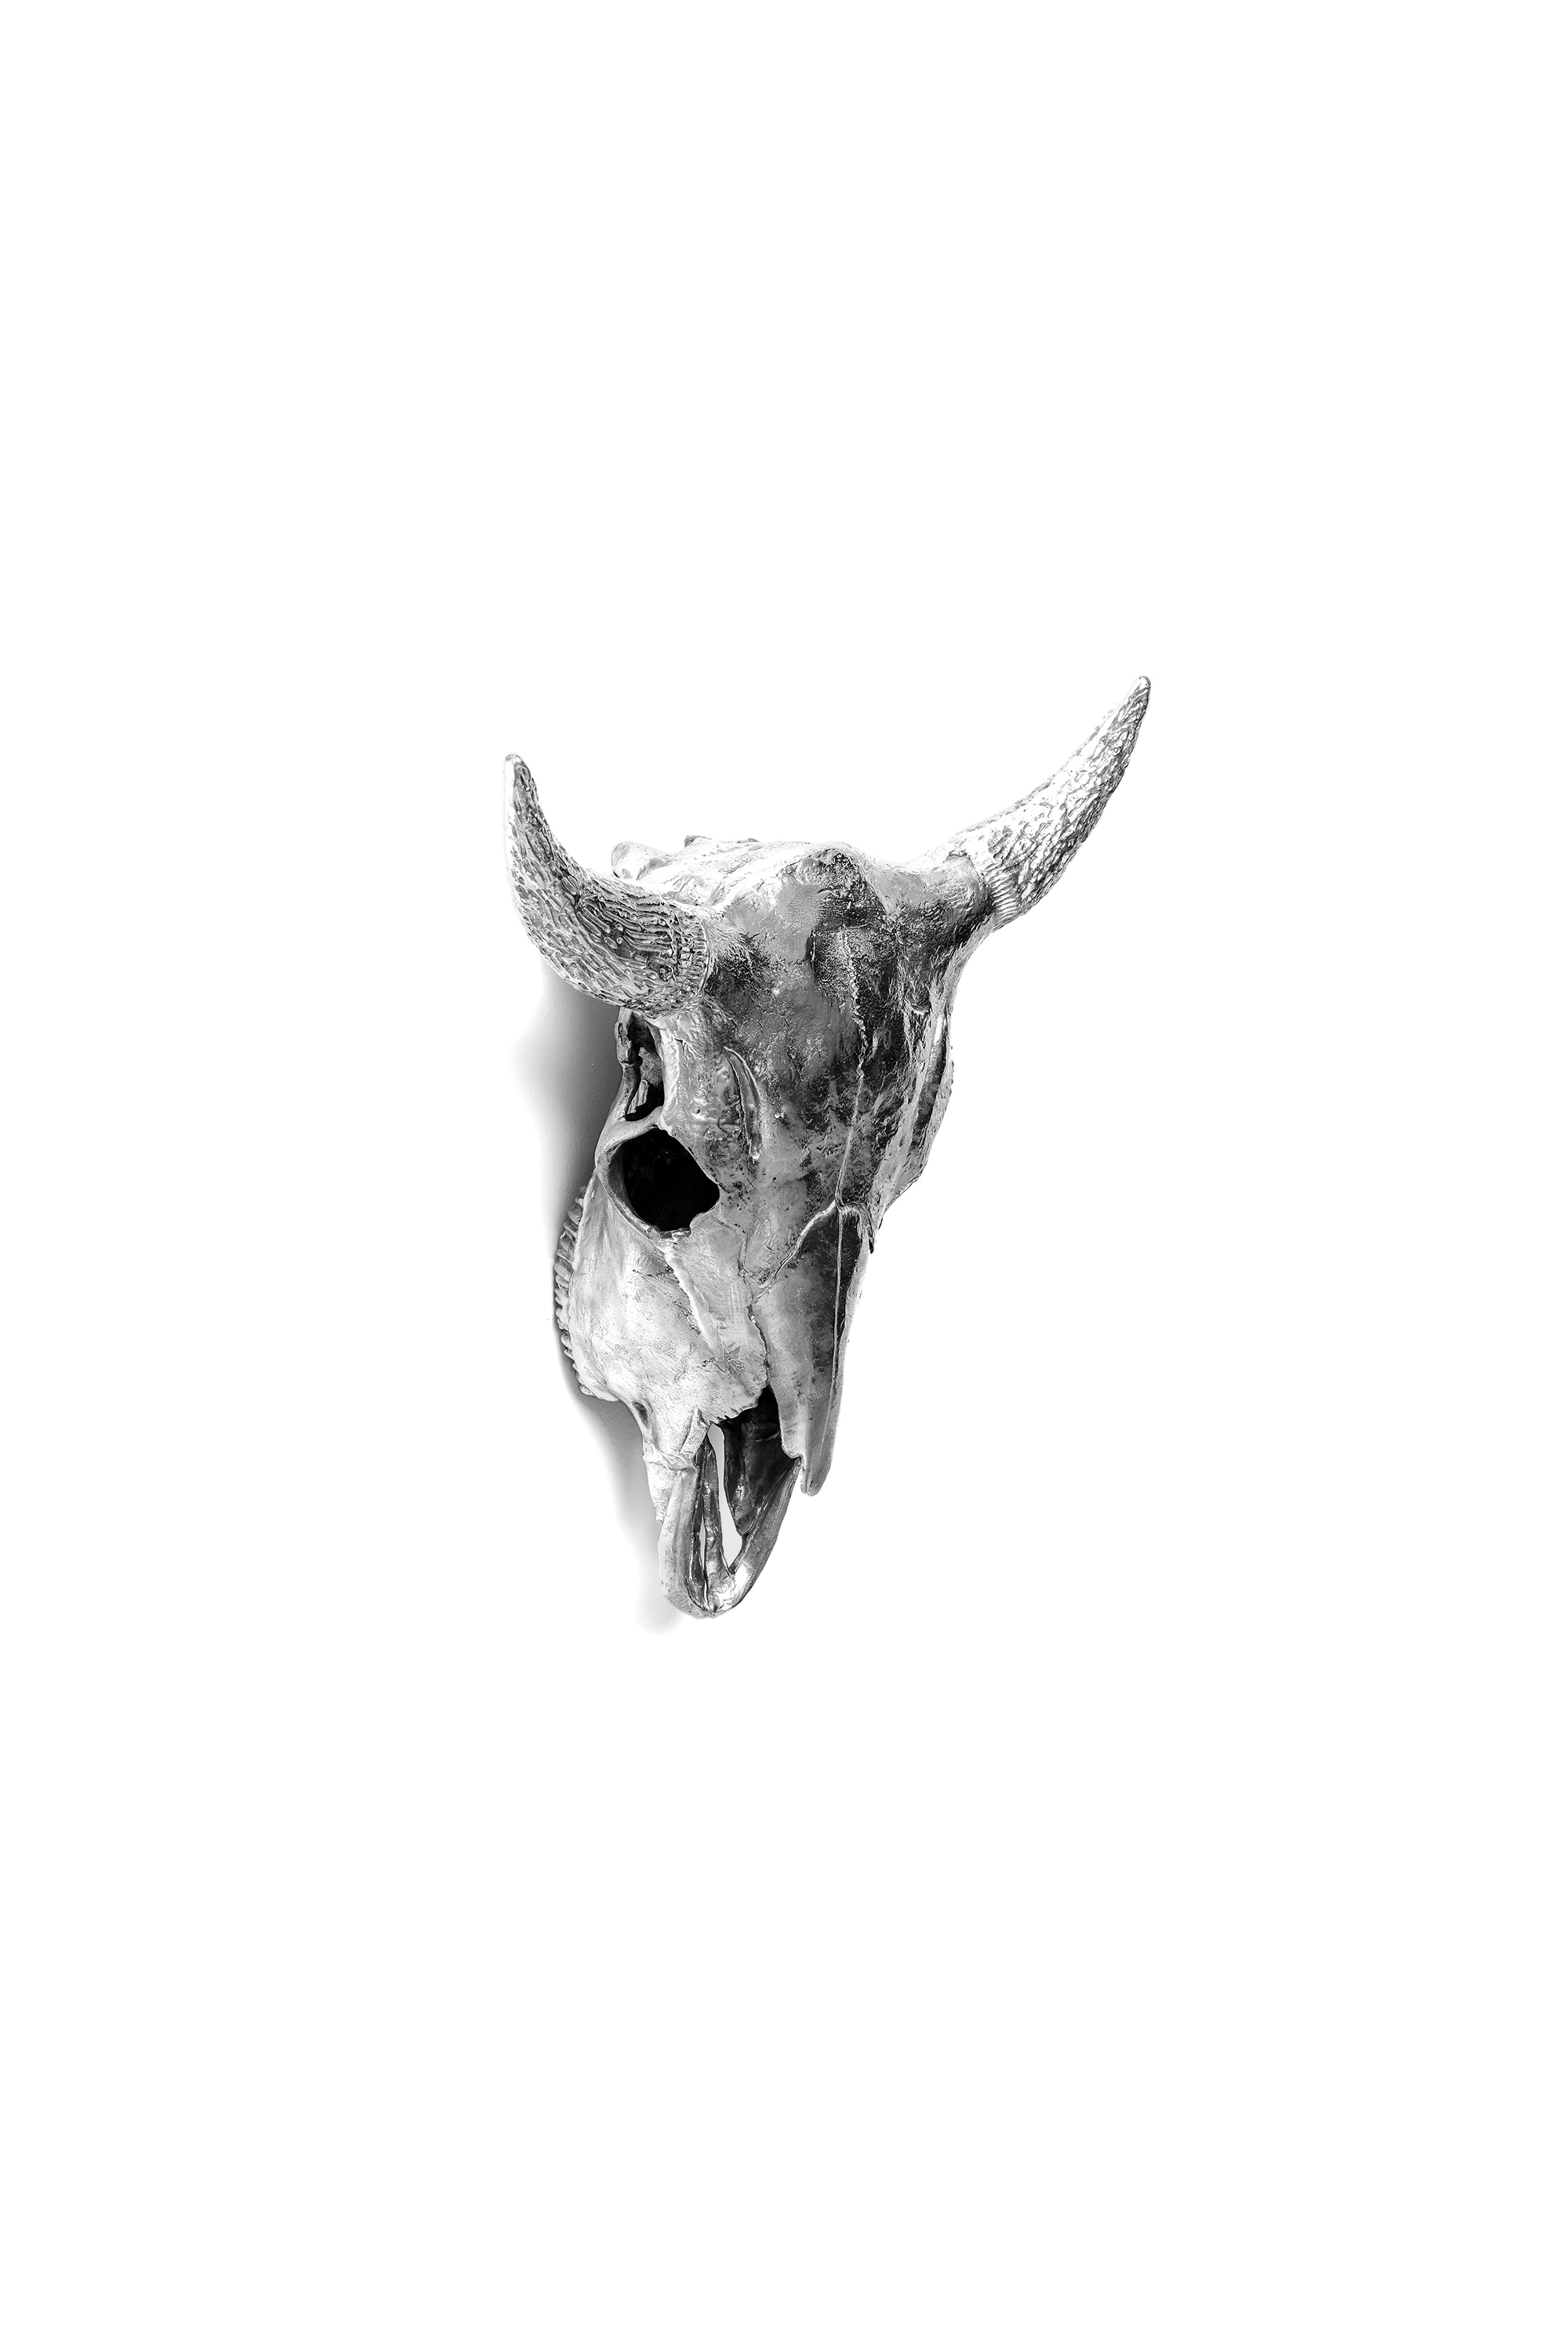 Diesel - 10899 WUNDERKAMMER,  - Home Accessories - Image 5